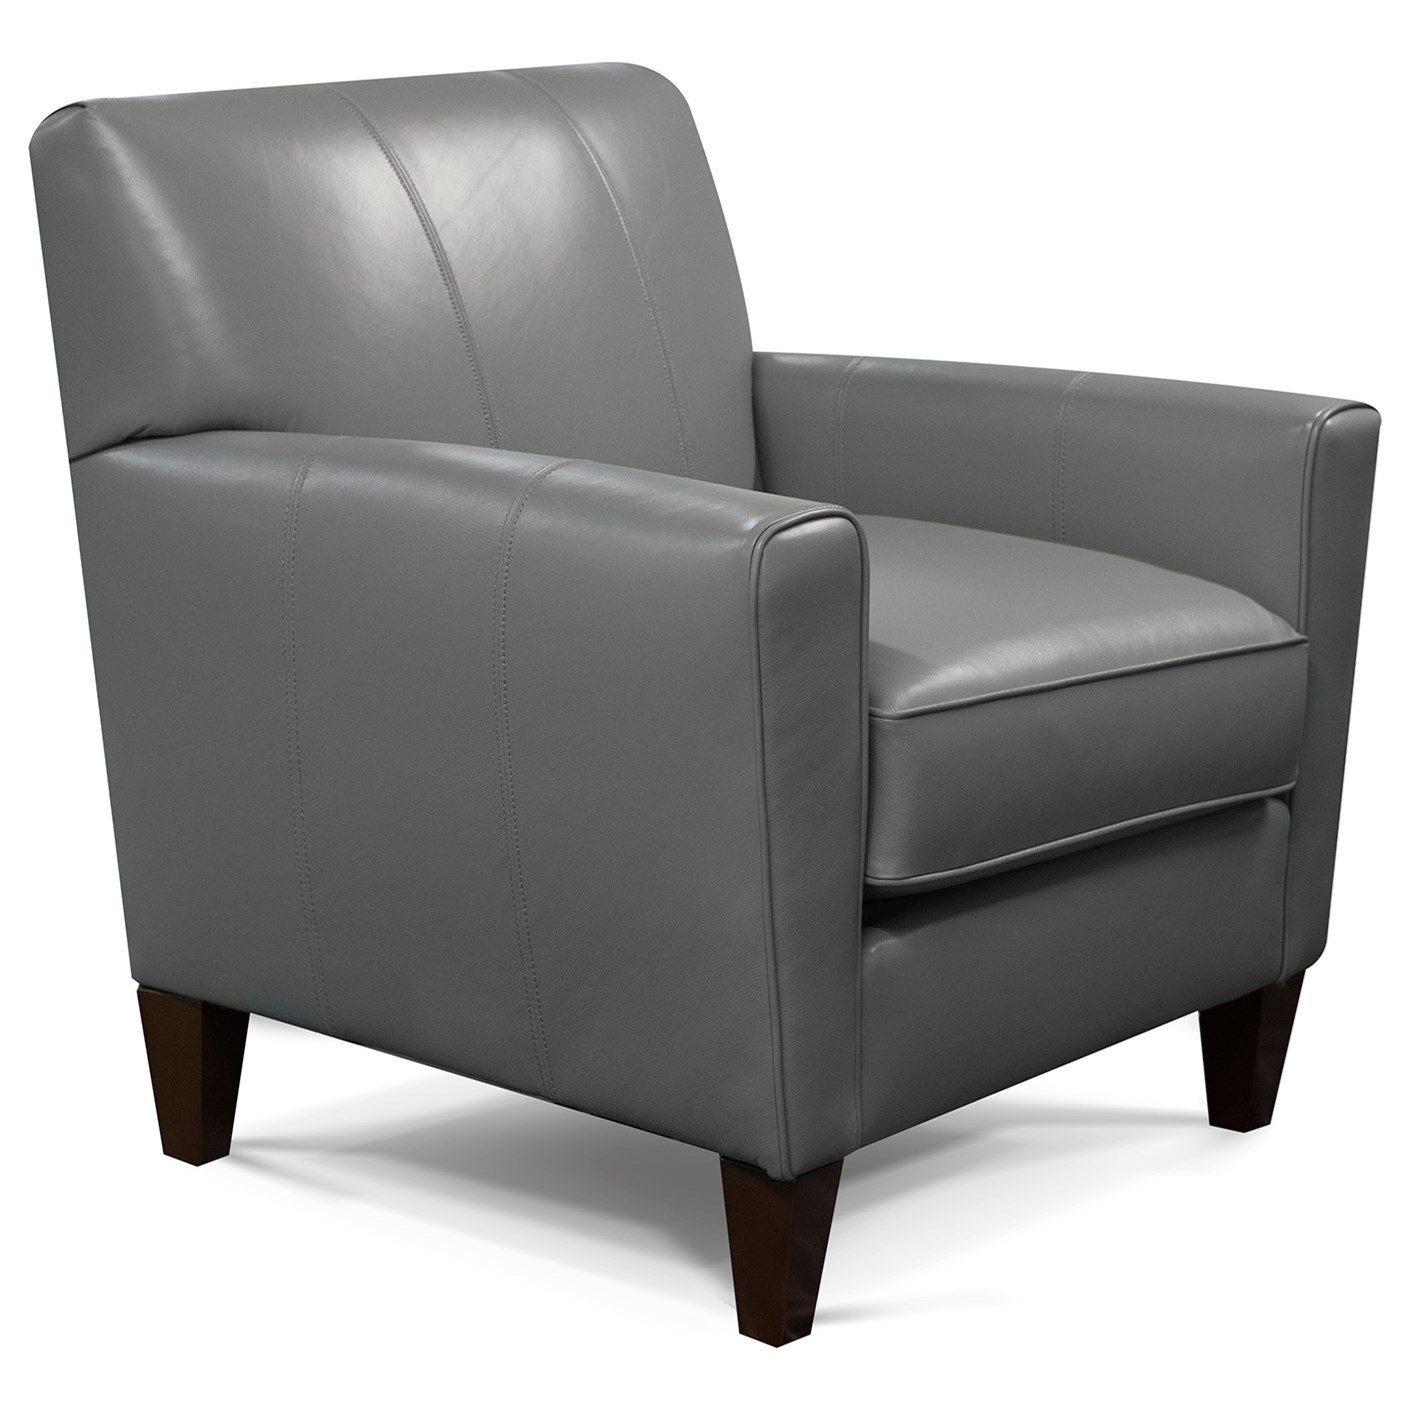 V620 Upholstered Chair by Alexvale at Northeast Factory Direct